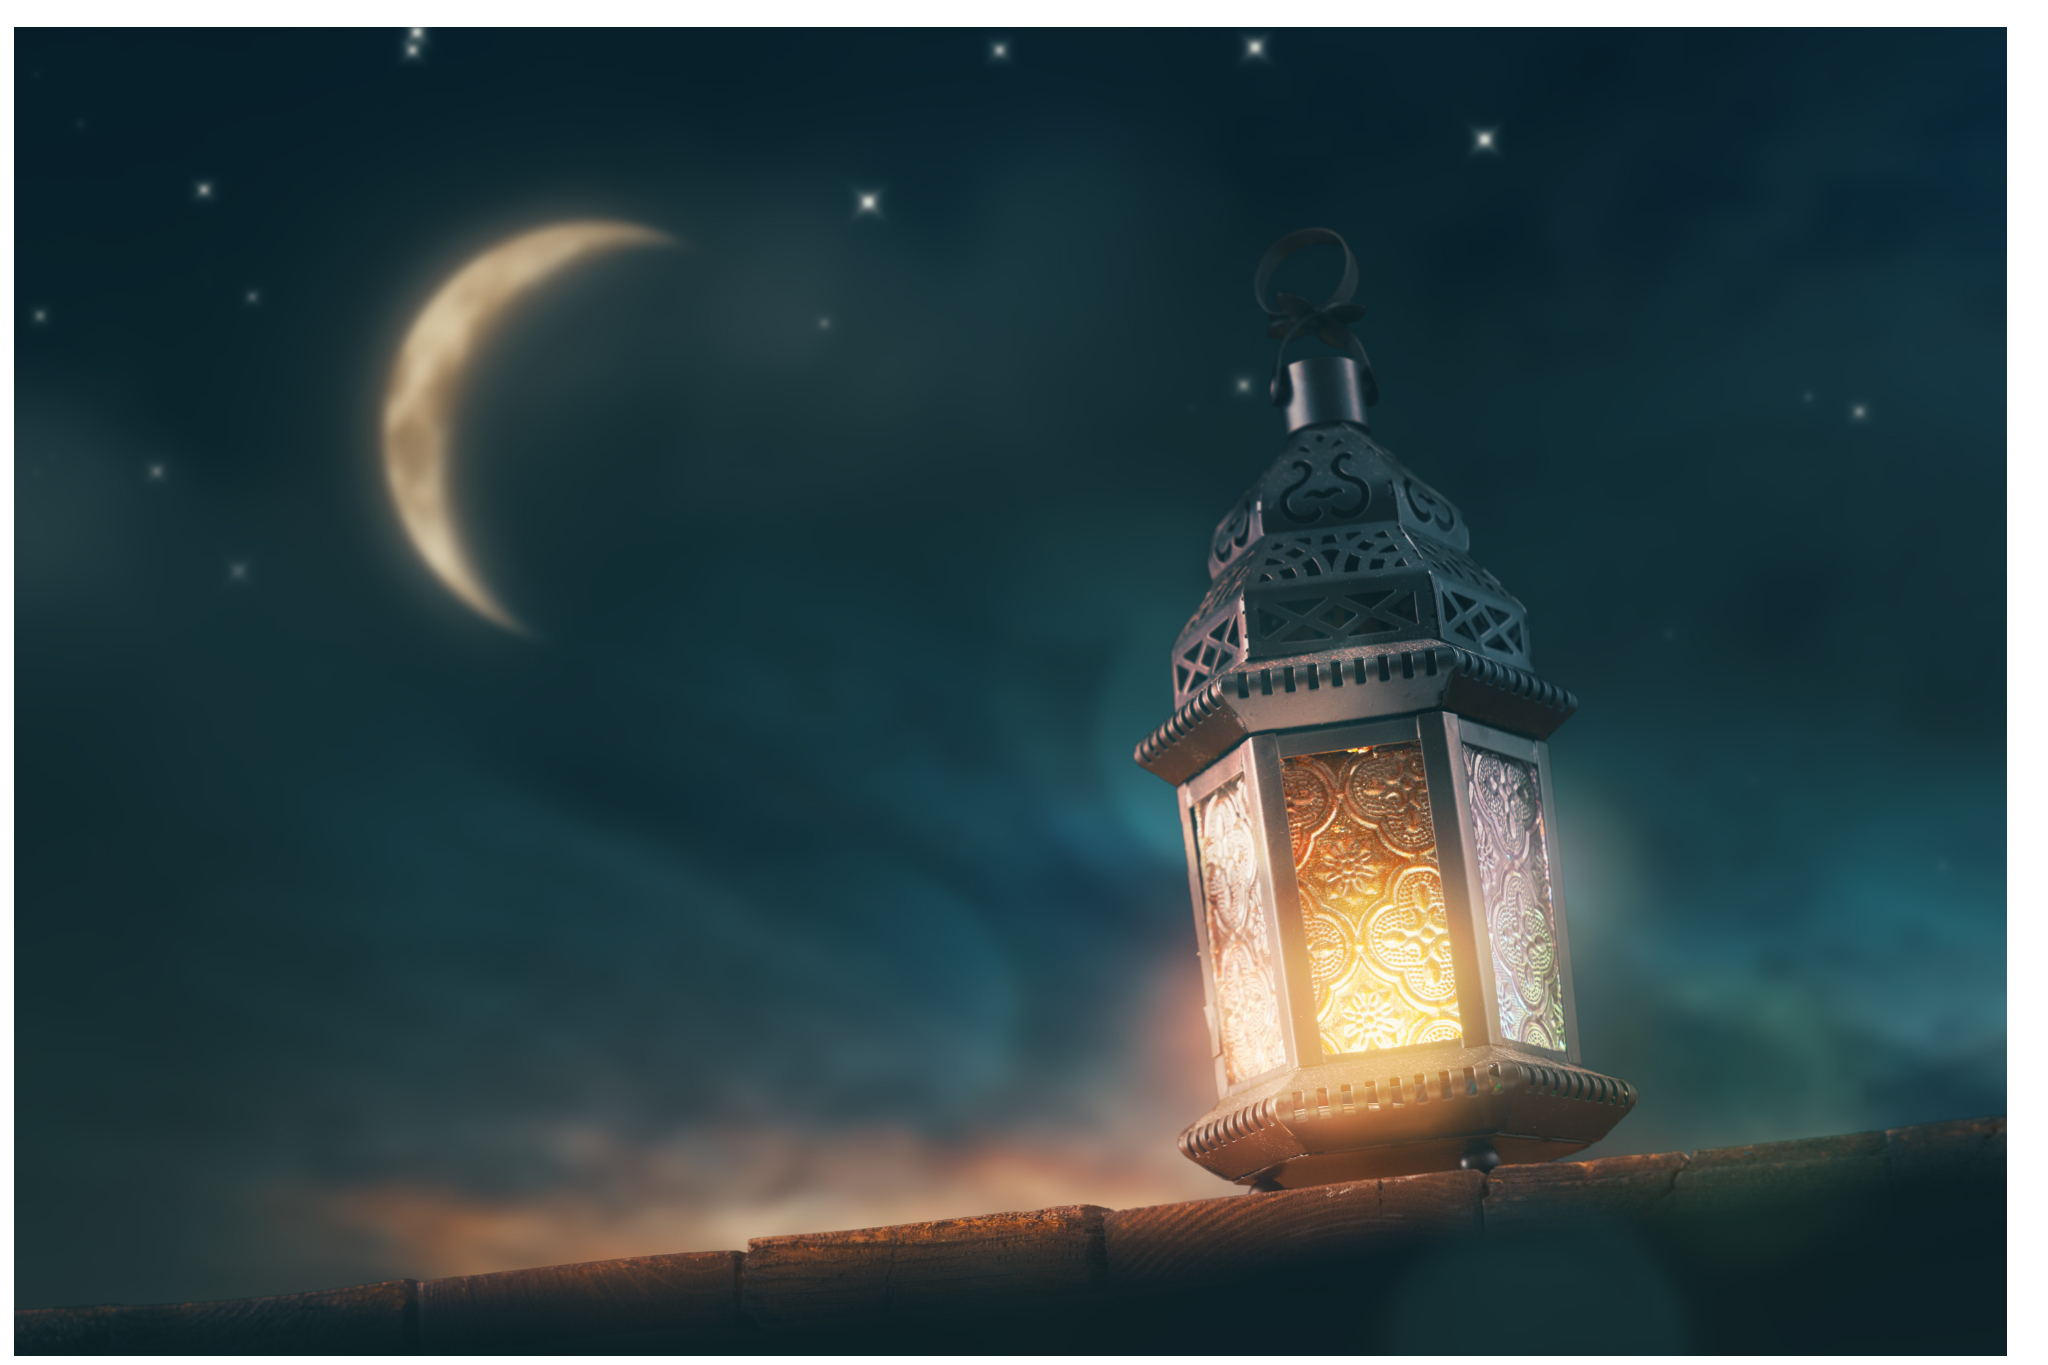 surreal stock photo of a lantern and moon